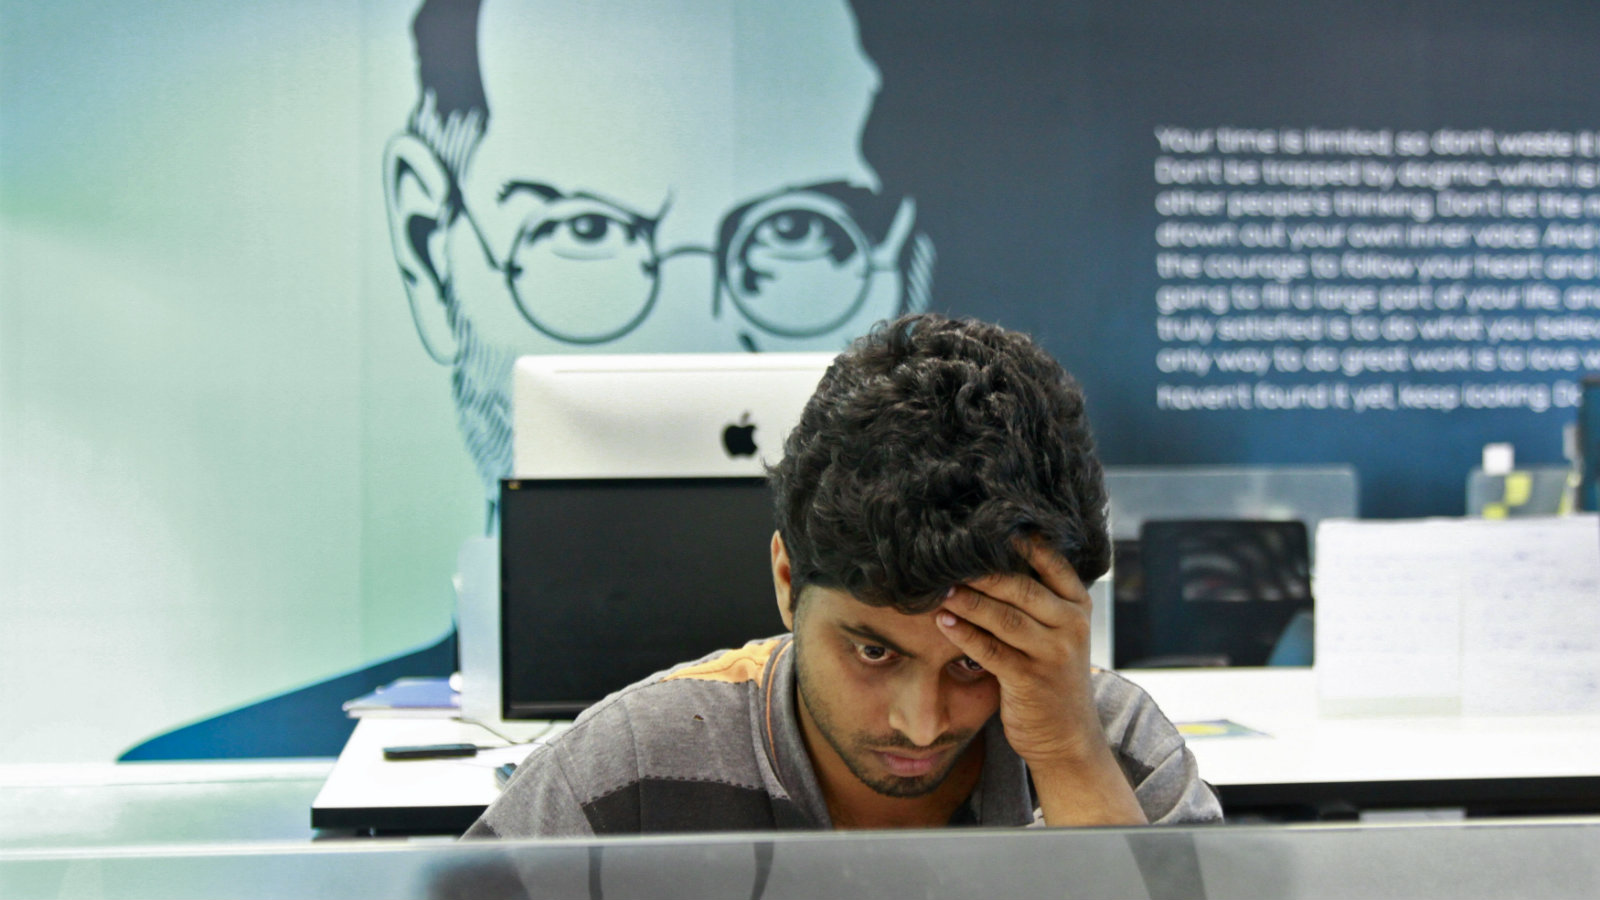 An employee works on a computer terminal against the backdrop of a picture of late Apple co-founder Steve Jobs at the Start-up Village in Kinfra High Tech Park in the southern Indian city of Kochi October 13, 2012. Three decades after Infosys, India's second-largest software service provider, was founded by middle-class engineers, the country has failed to create an enabling environment for first-generation entrepreneurs. Startup Village wants to break the logjam by helping engineers develop 1,000 Internet and mobile companies in the next 10 years. It provides its members with office space, guidance and a chance to hobnob with the stars of the tech industry. But critics say this may not even be the beginning of a game-changer unless India deals with a host of other impediments - from red tape to a lack of innovation and a dearth of investors - that are blocking entrepreneurship in Asia's third-largest economy. To match Feature INDIA-TECHVILLAGE/ Picture taken October 13, 2012.